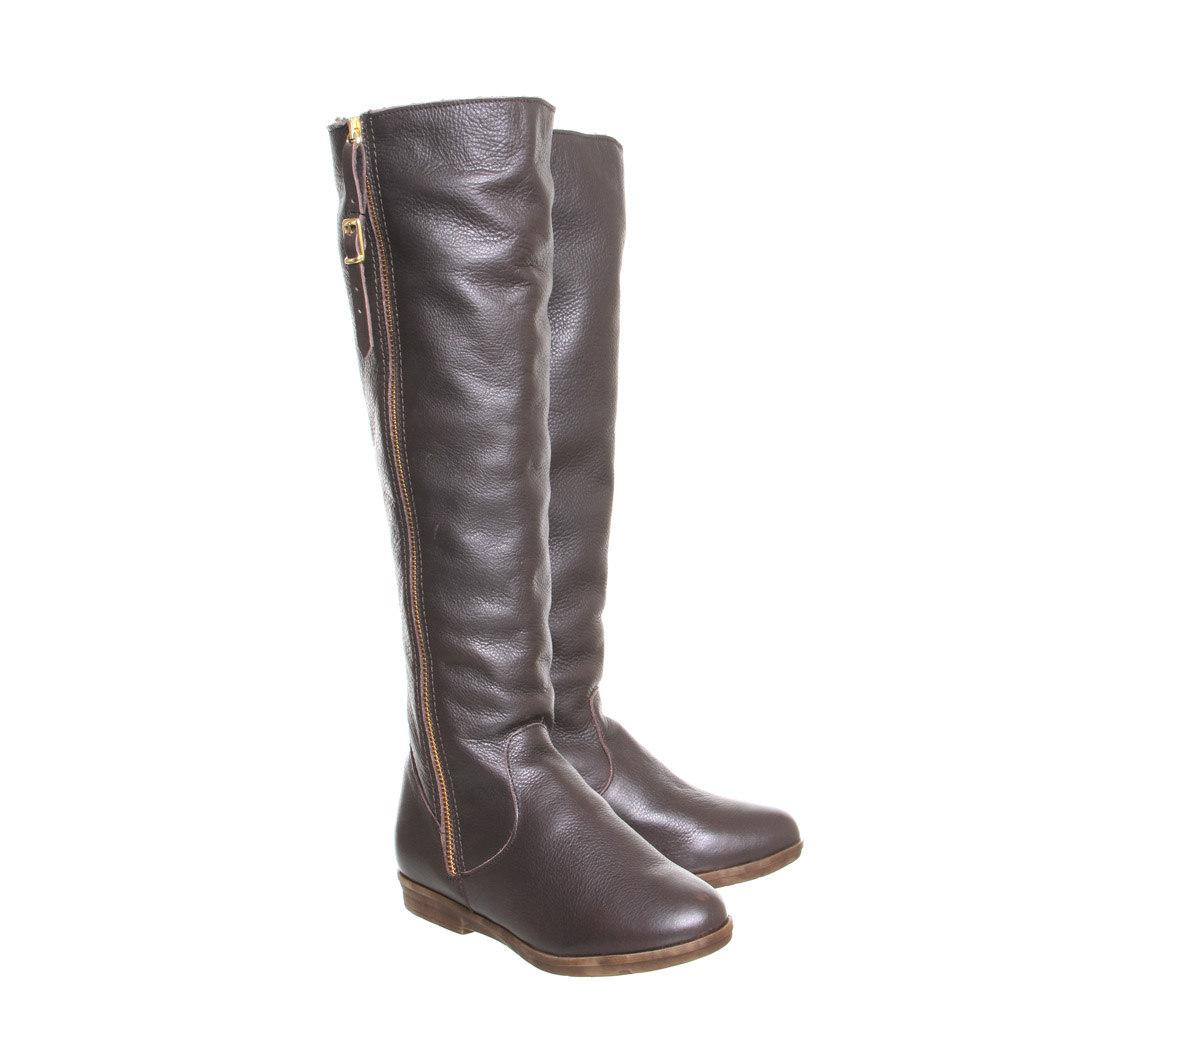 Office Nautical Knee Boots in Brown